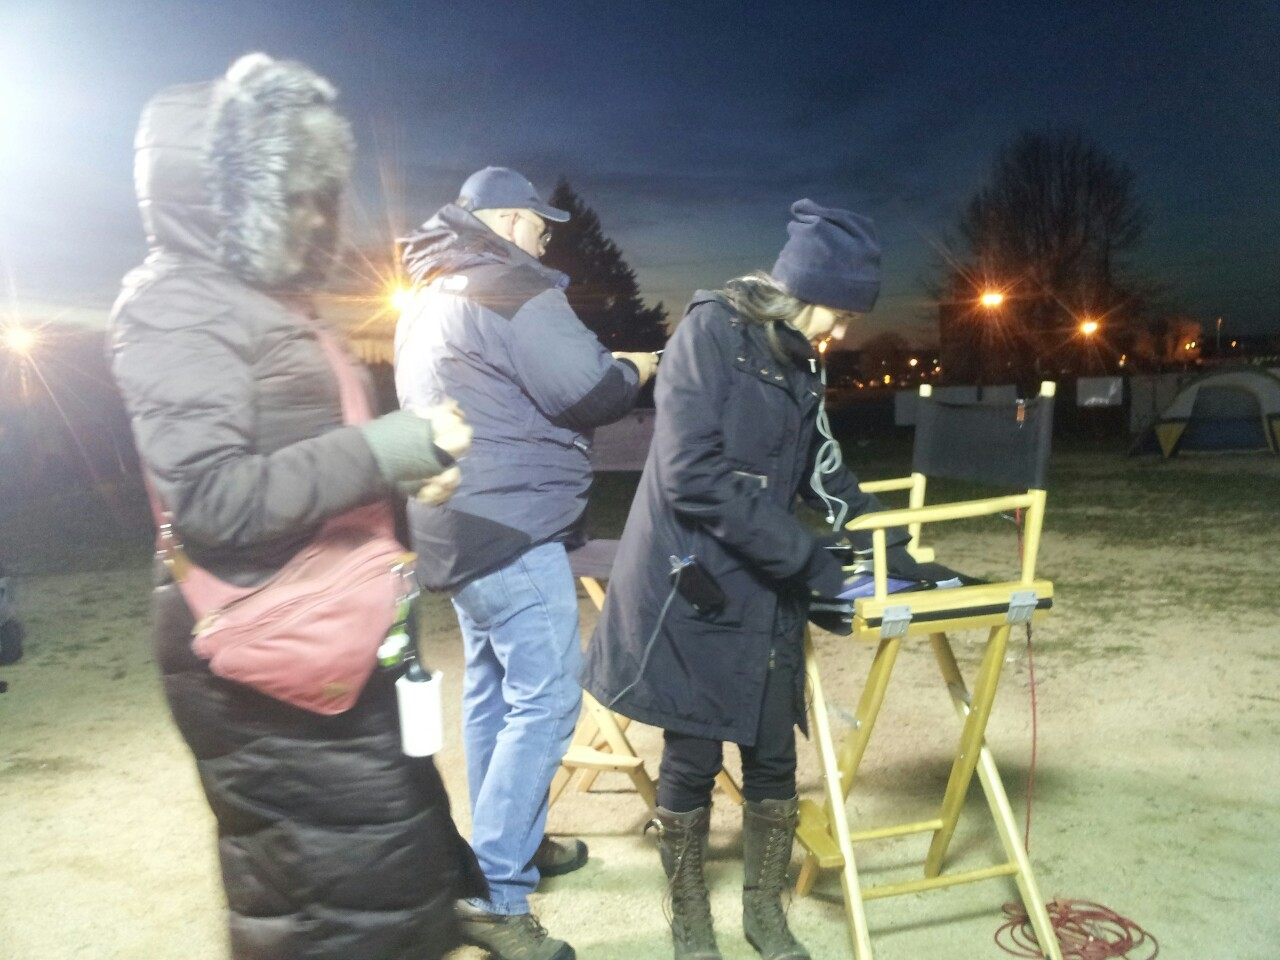 Preparing for the live broadcast from the Bainport protest encampment inFreeport, IL, at about 6:30 am on Oct 31 2012.